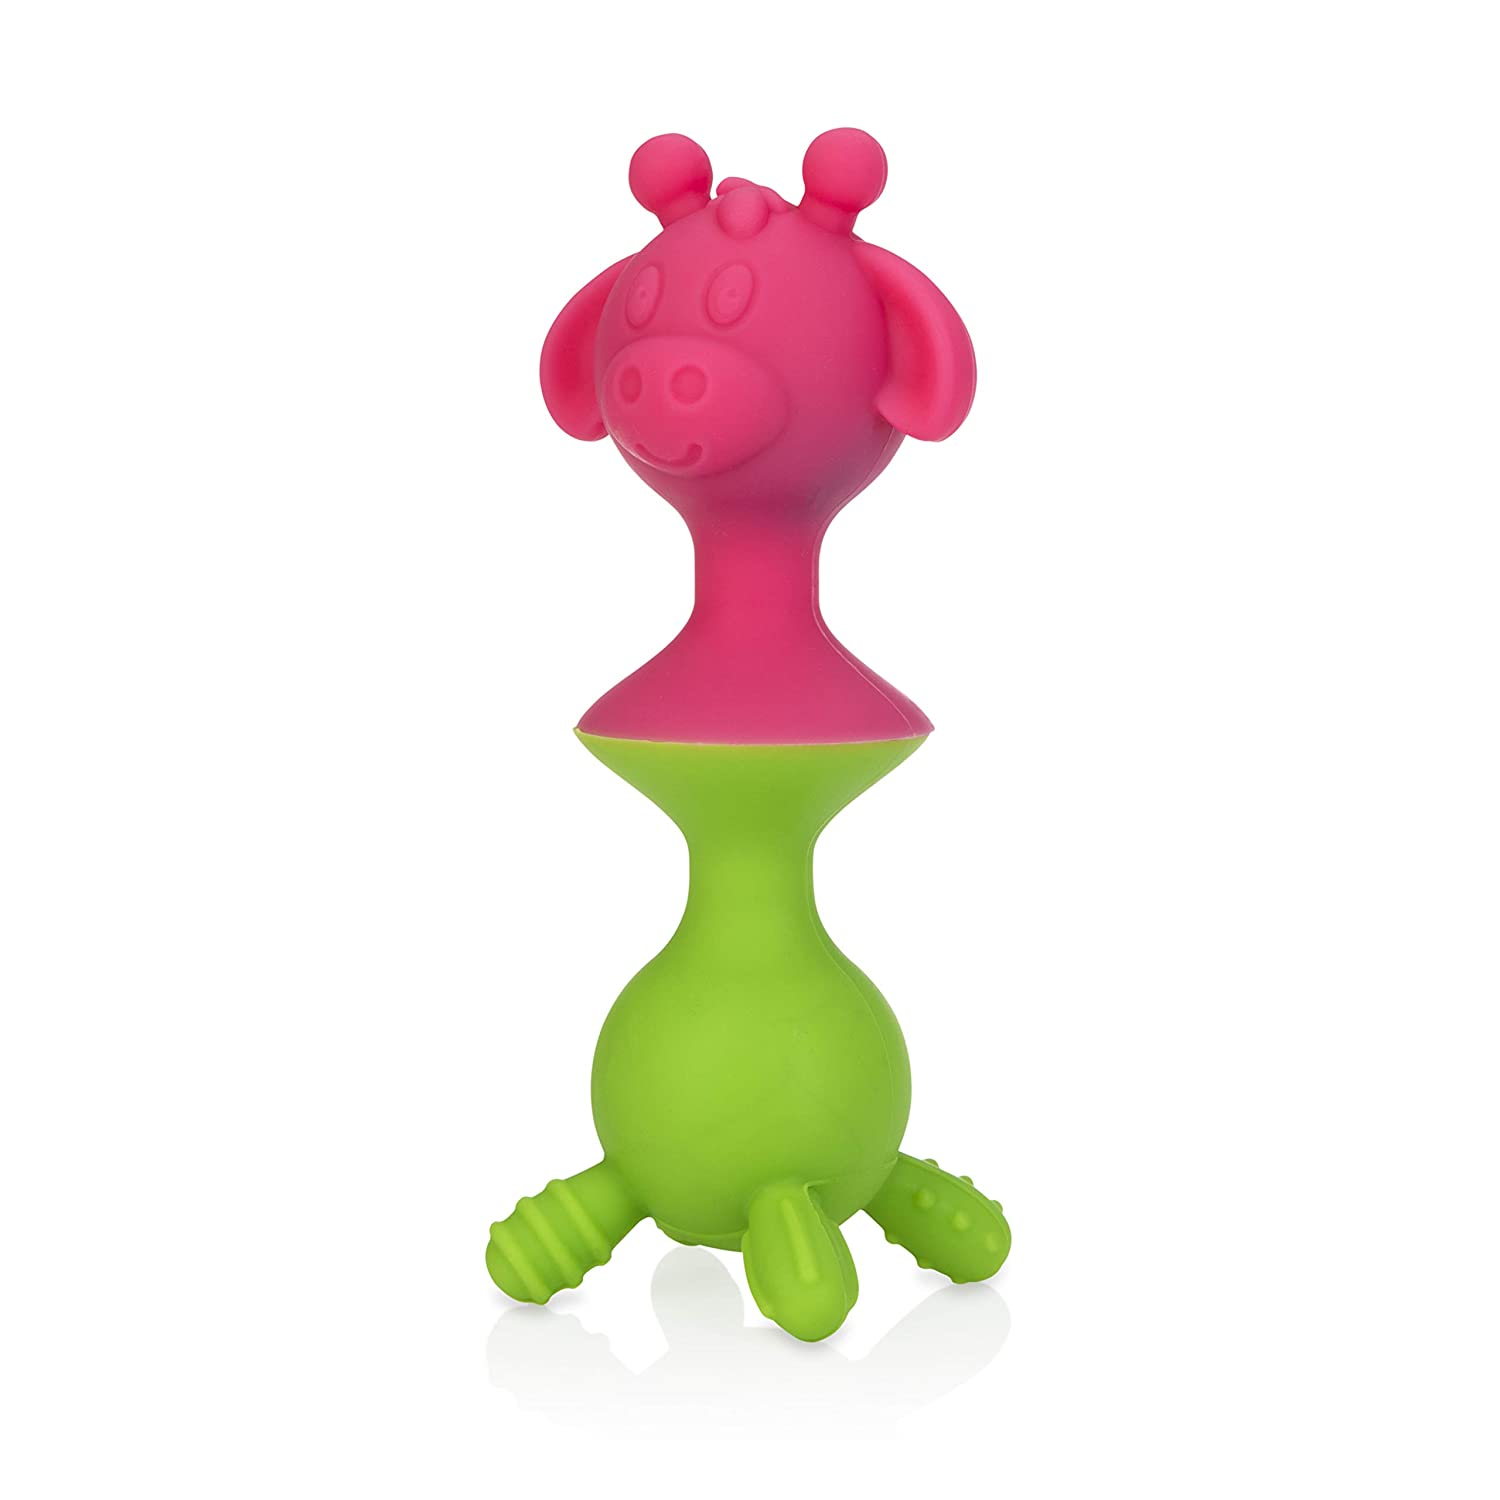 Nuby Silly Giraffe Interactive Suction Toys with Built-in Rattle Yellow//Aqua 2Piece